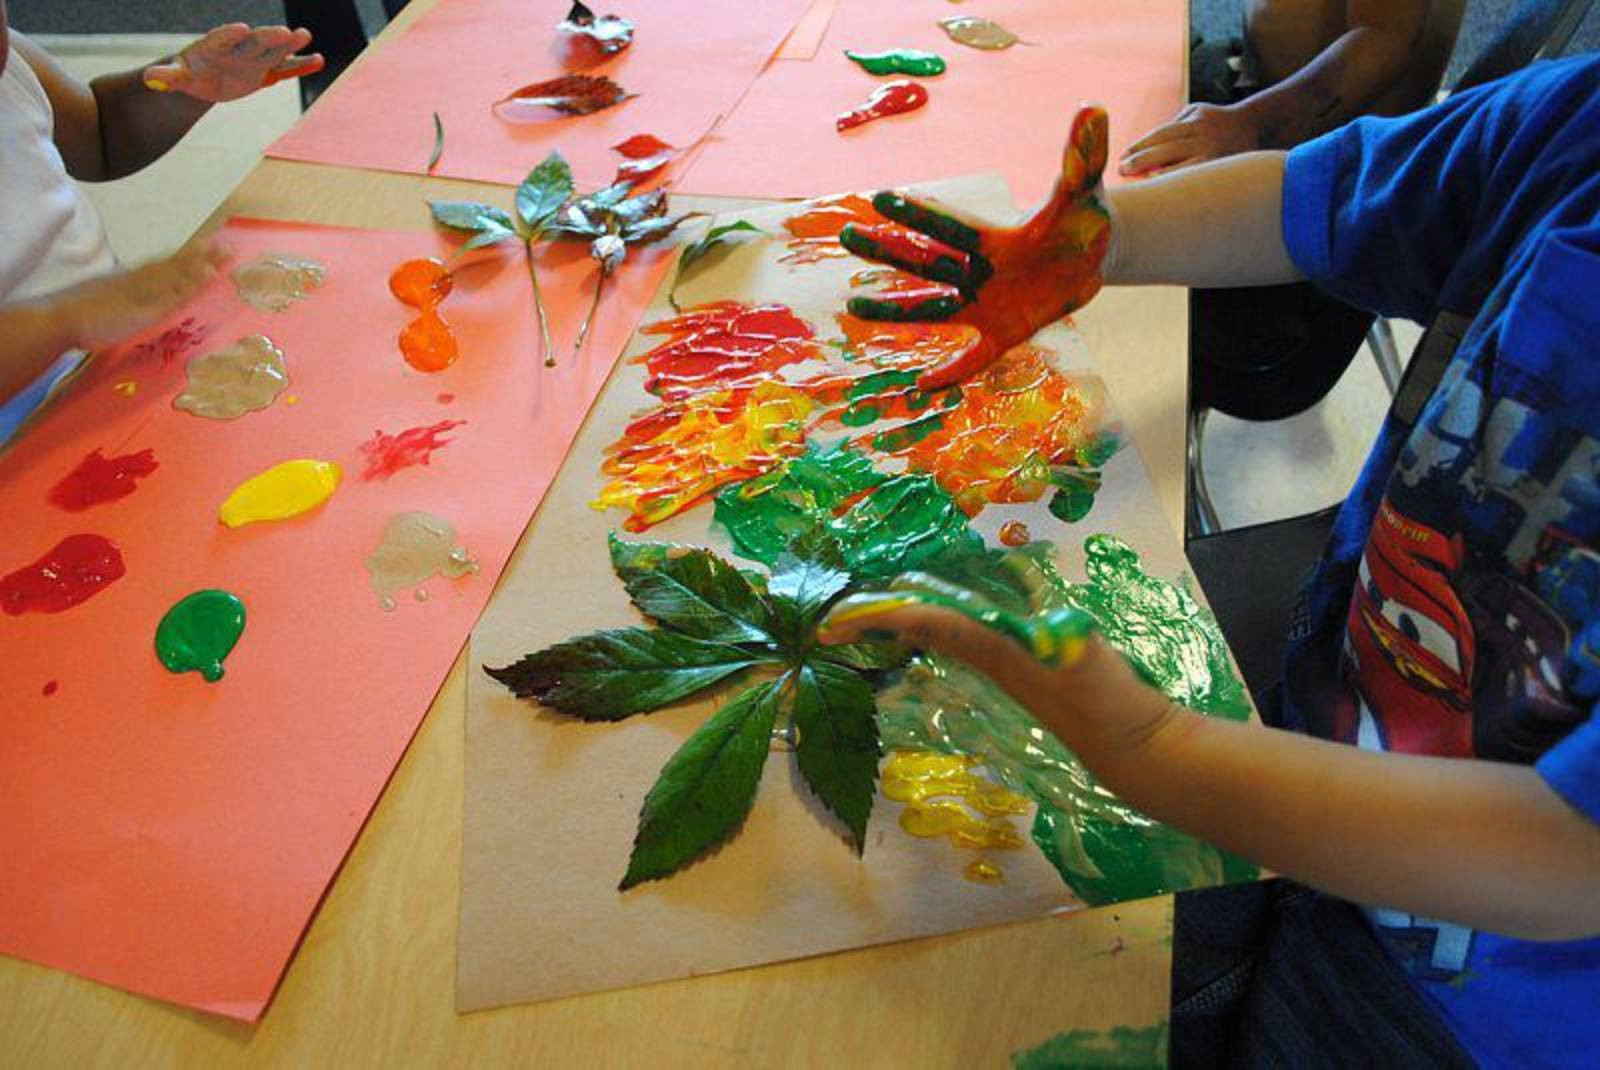 Creative arts and crafts steps to learning preschool for Arts and crafts for daycare